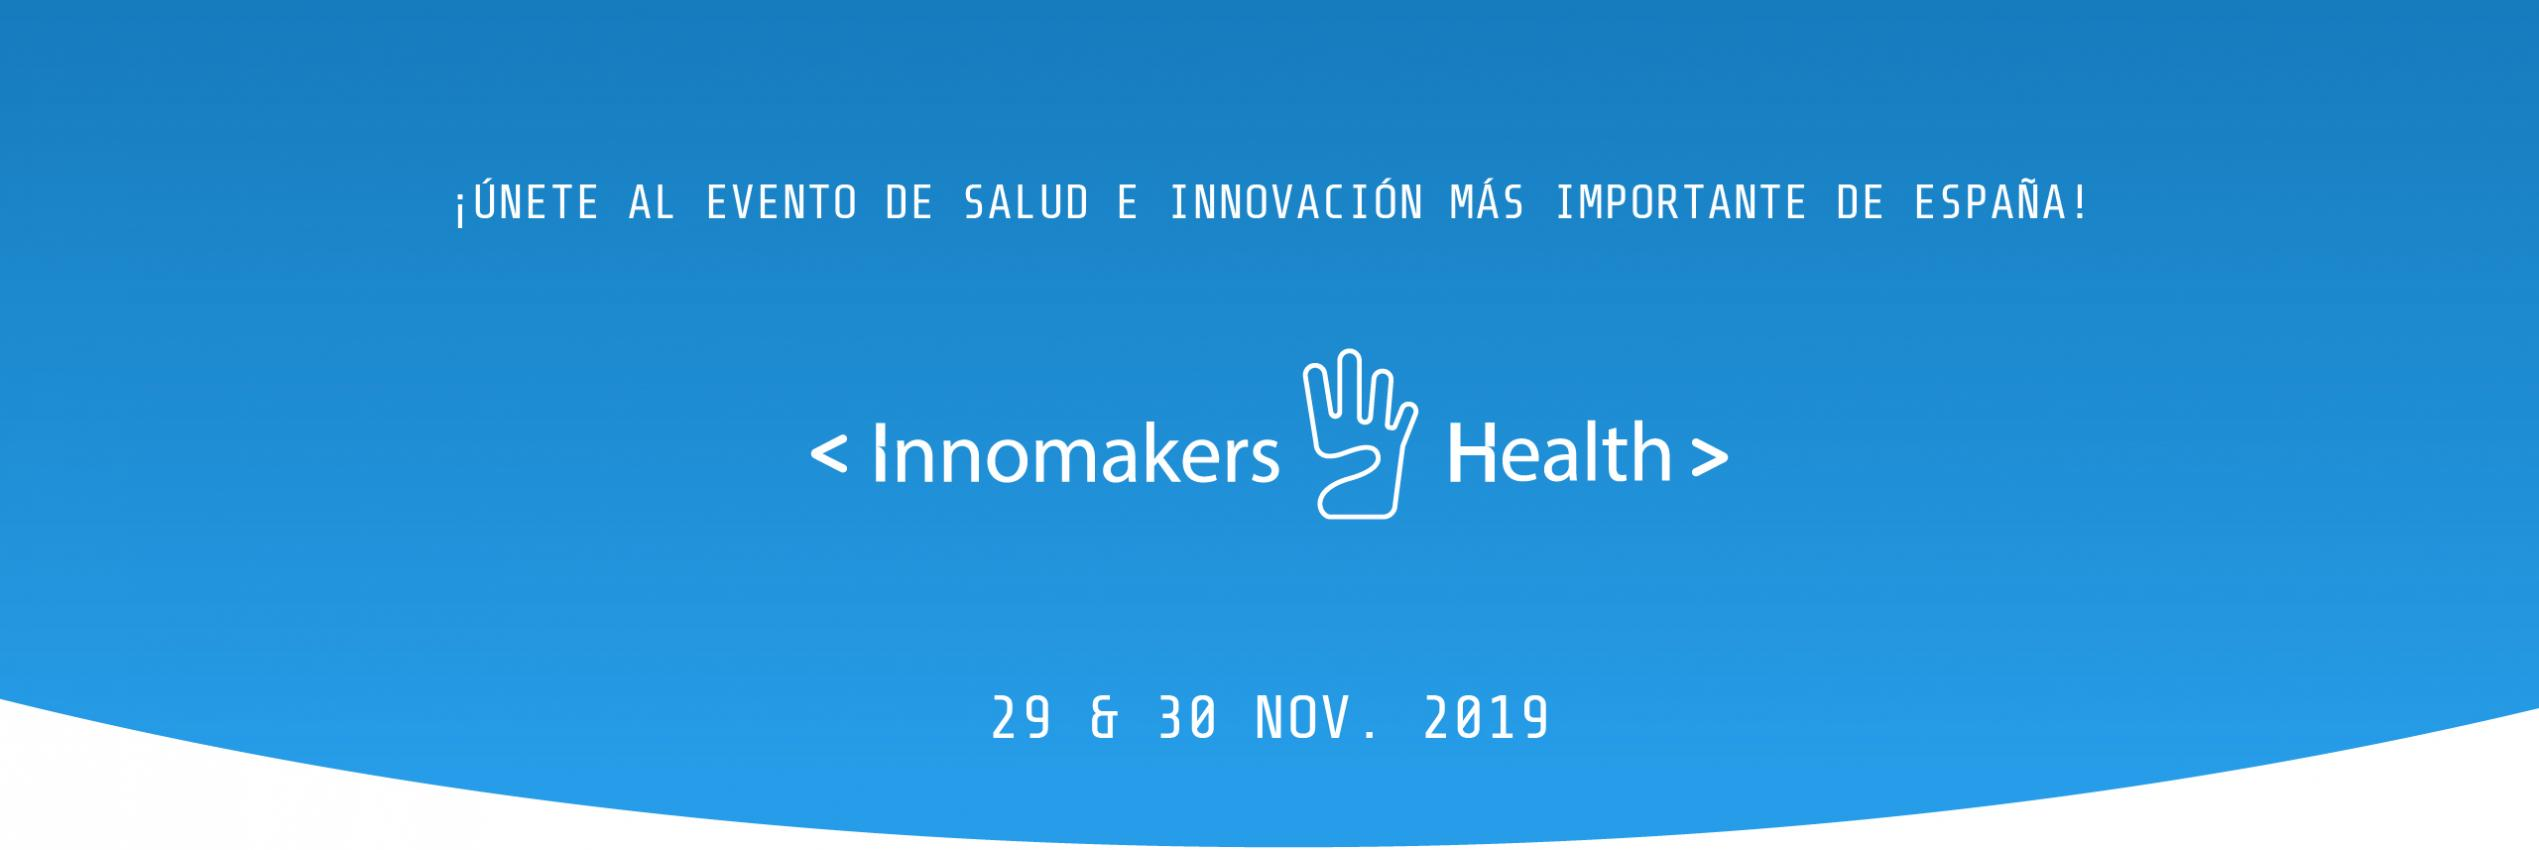 innomakers4health